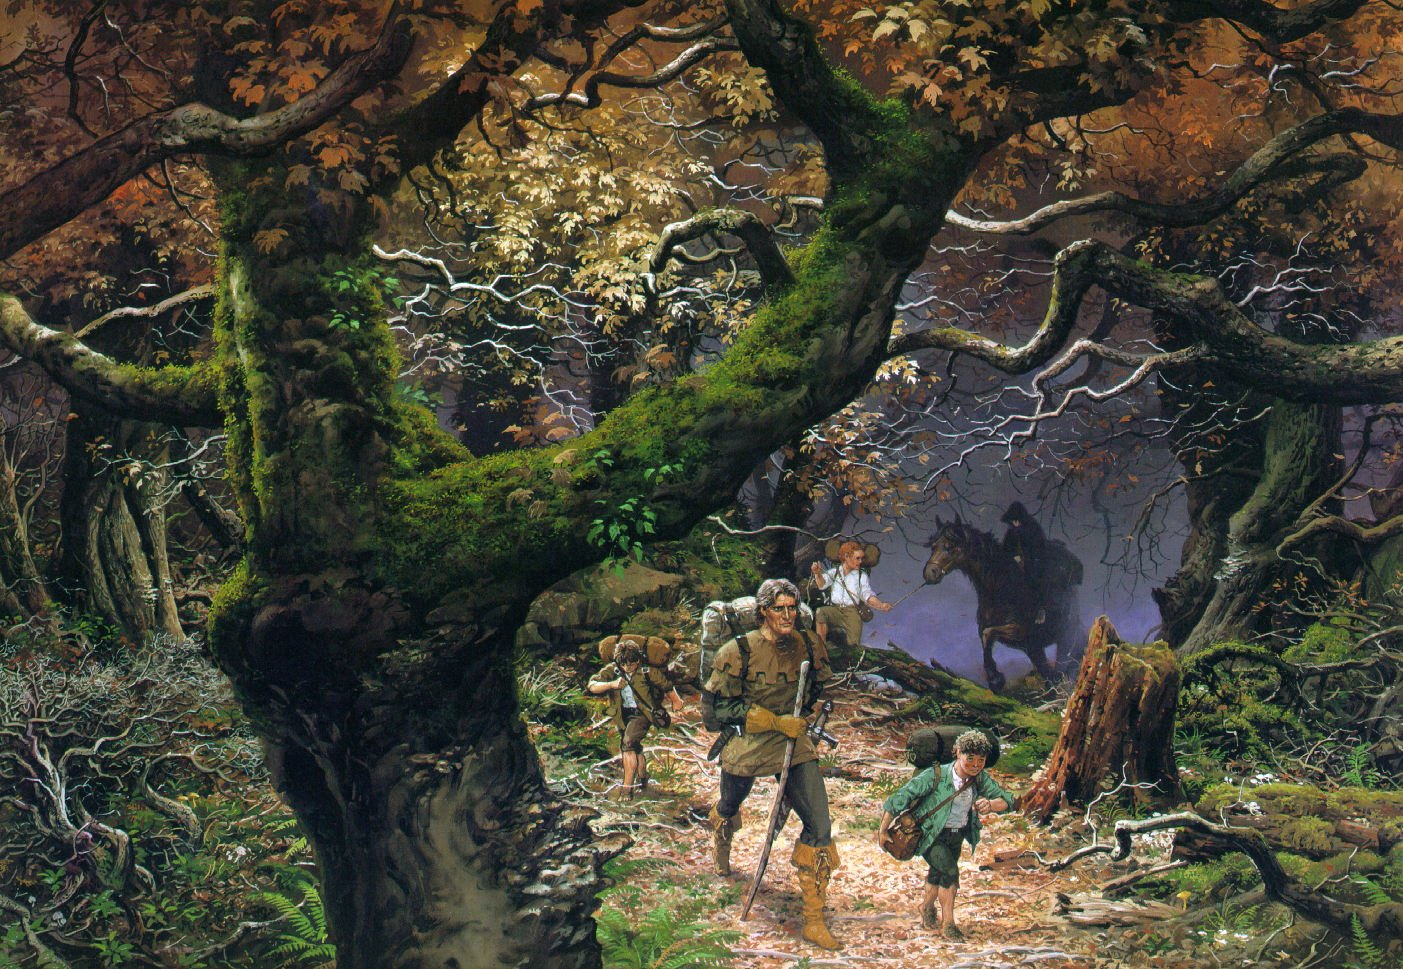 fantasy as a genre of imaginative fiction in jrr tolkiens the hobbit The lord of the rings by jrr tolkien 4 books, an epic fantasy jrr tolkiens great work of imaginative fiction jrrtolkien, lord of the rings, the hobbit.